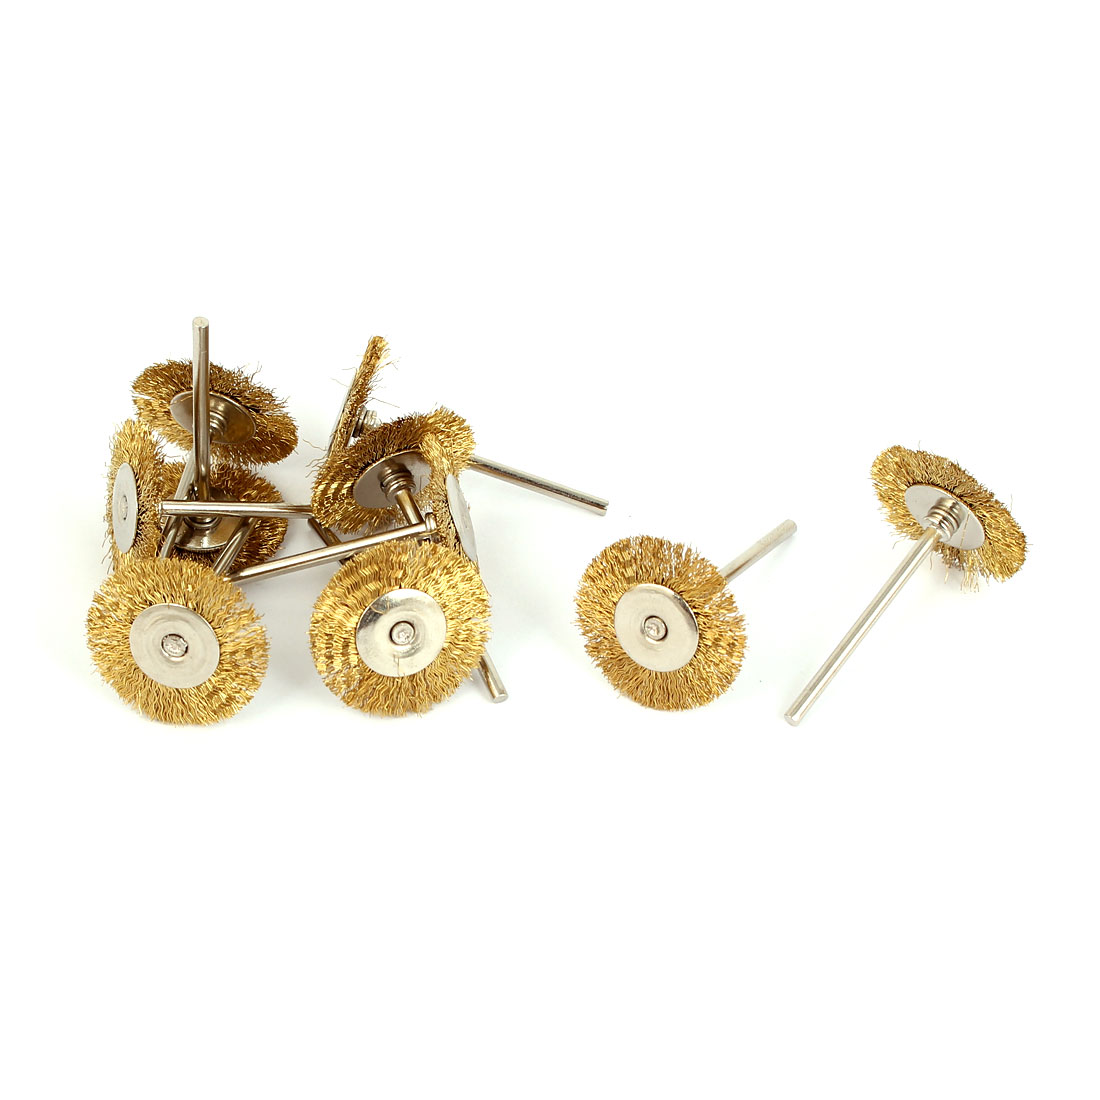 Steel Wire Jewelry Buffing Polishing Wheels Brushes Gold Tone 10pcs